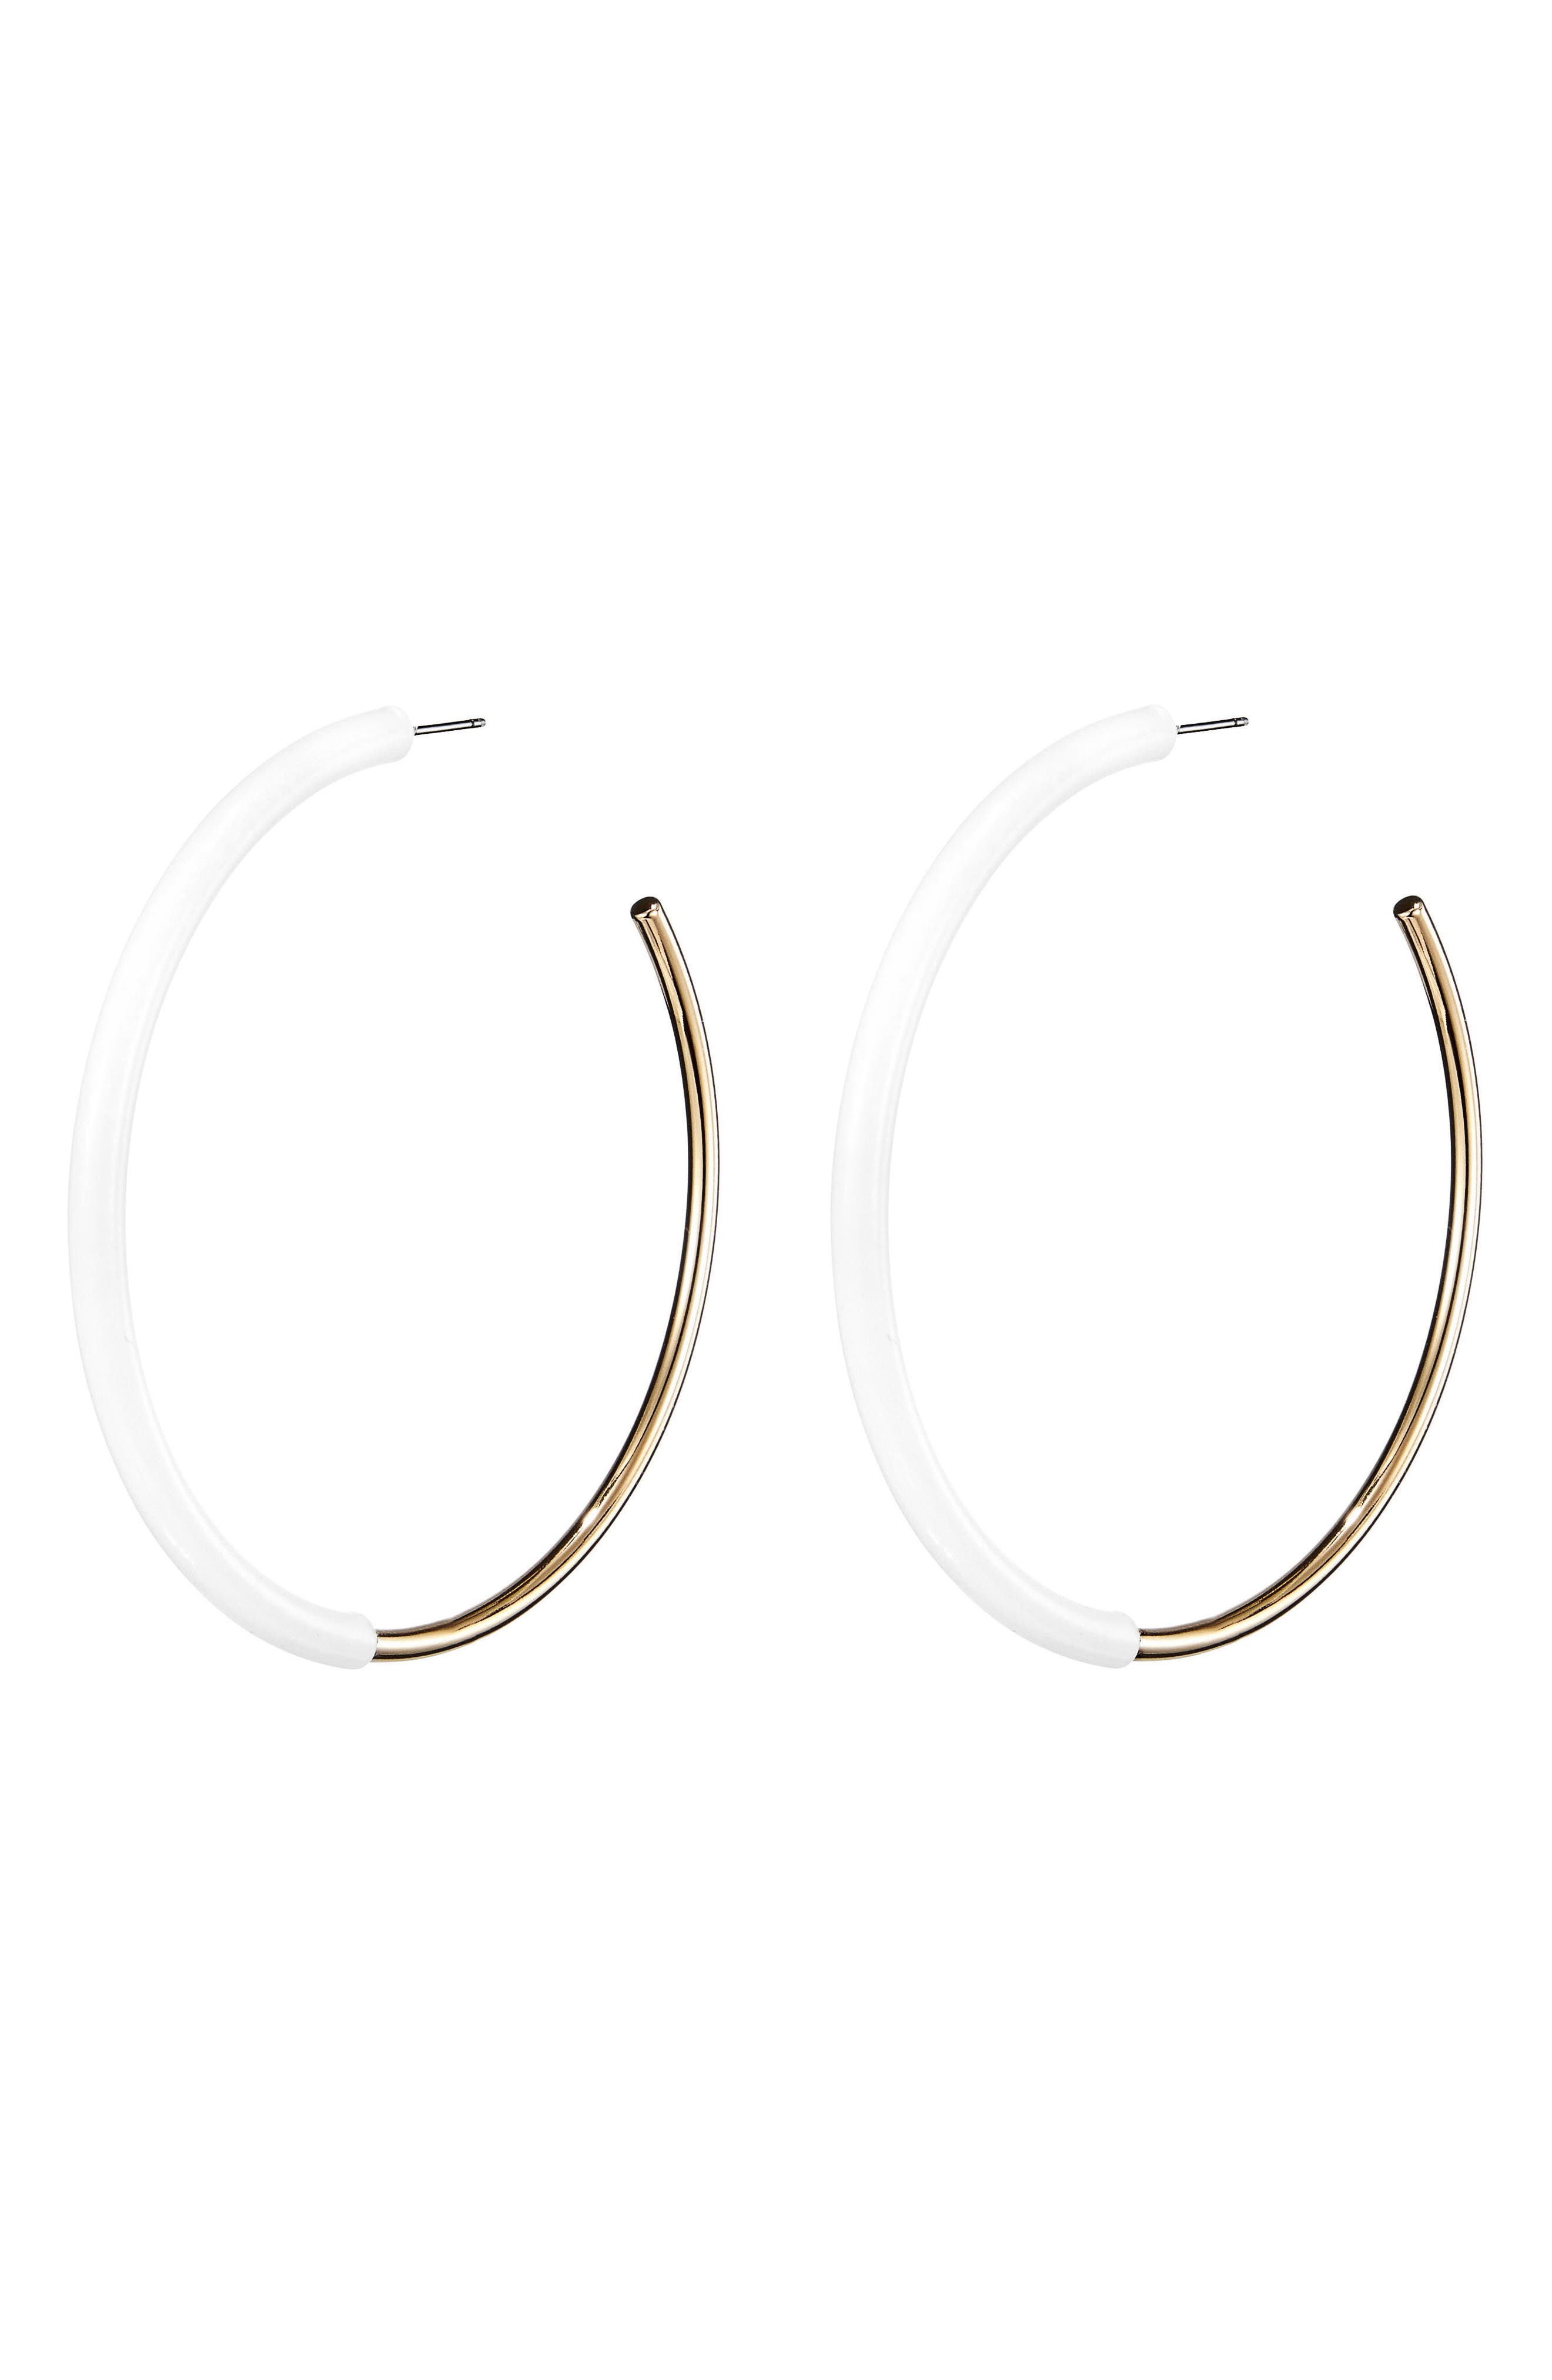 Lola Large Hoop Earrings,                             Main thumbnail 1, color,                             100